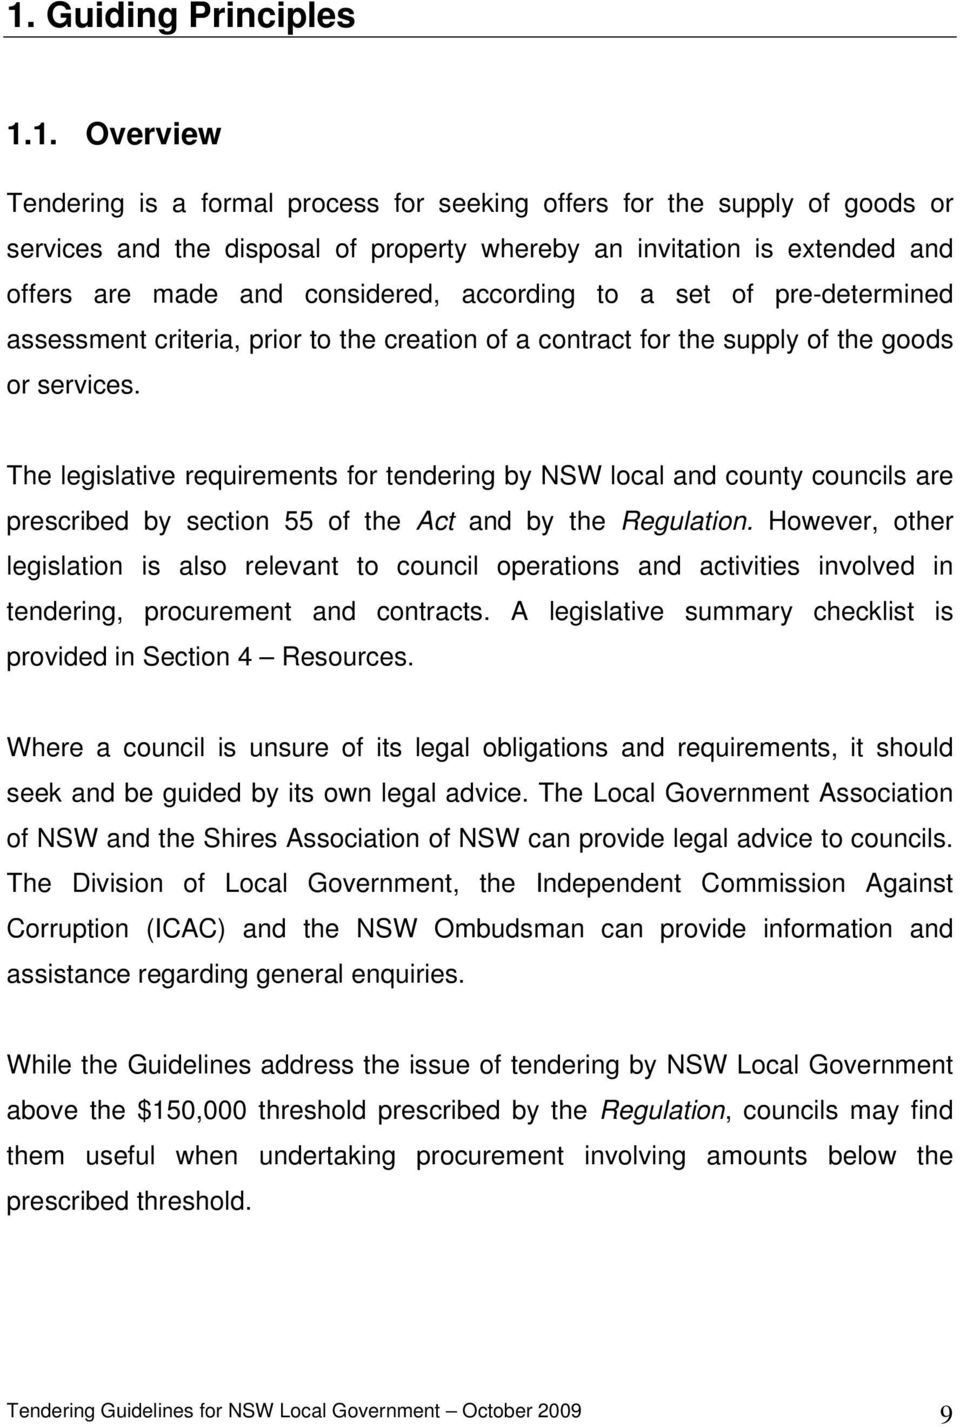 The legislative requirements for tendering by NSW local and county councils are prescribed by section 55 of the Act and by the Regulation.